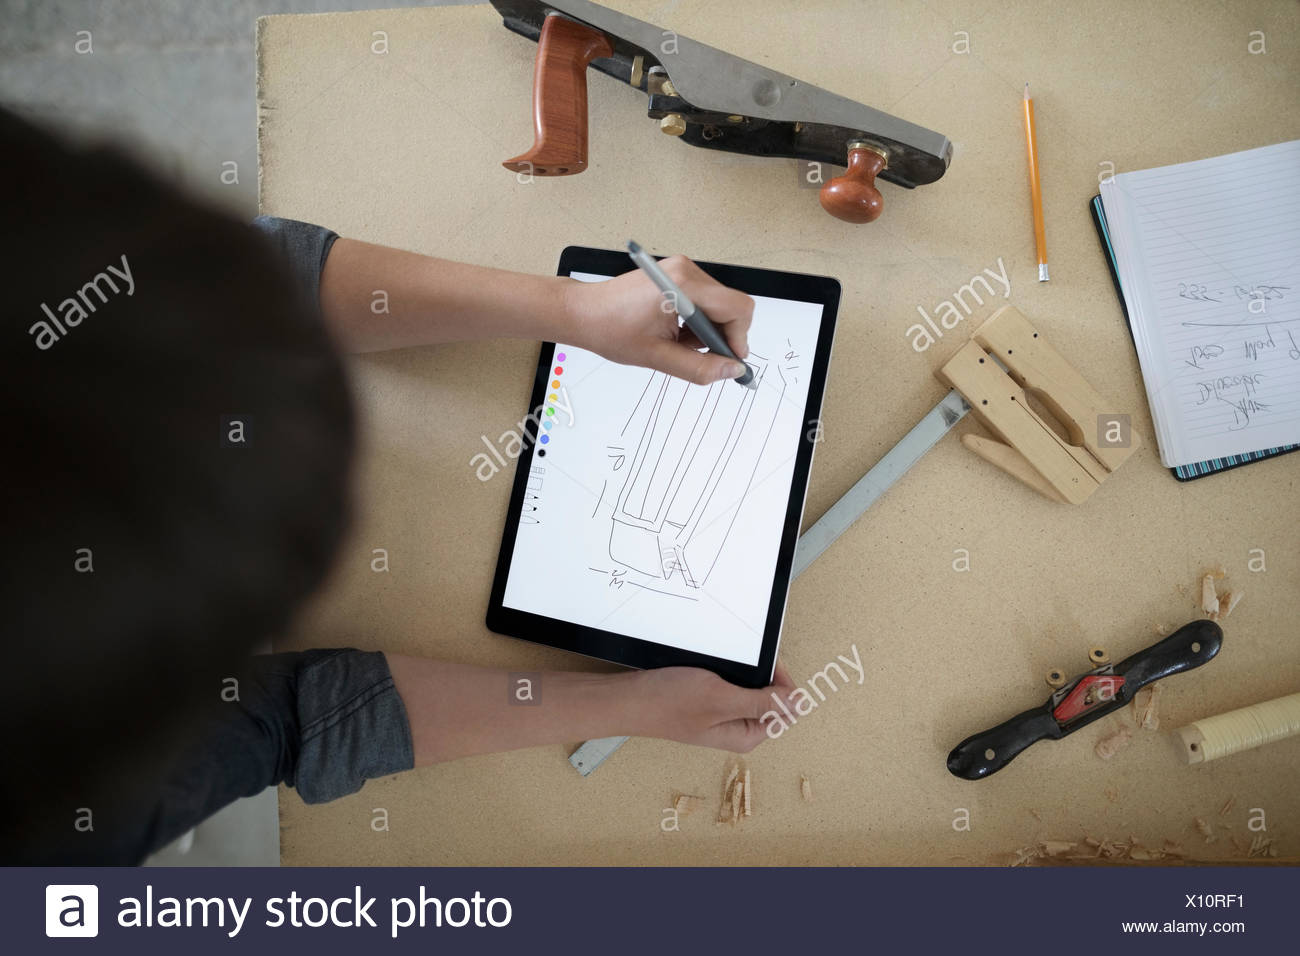 View from above female carpenter sketching with digital tablet stylus at workbench in workshop - Stock Image